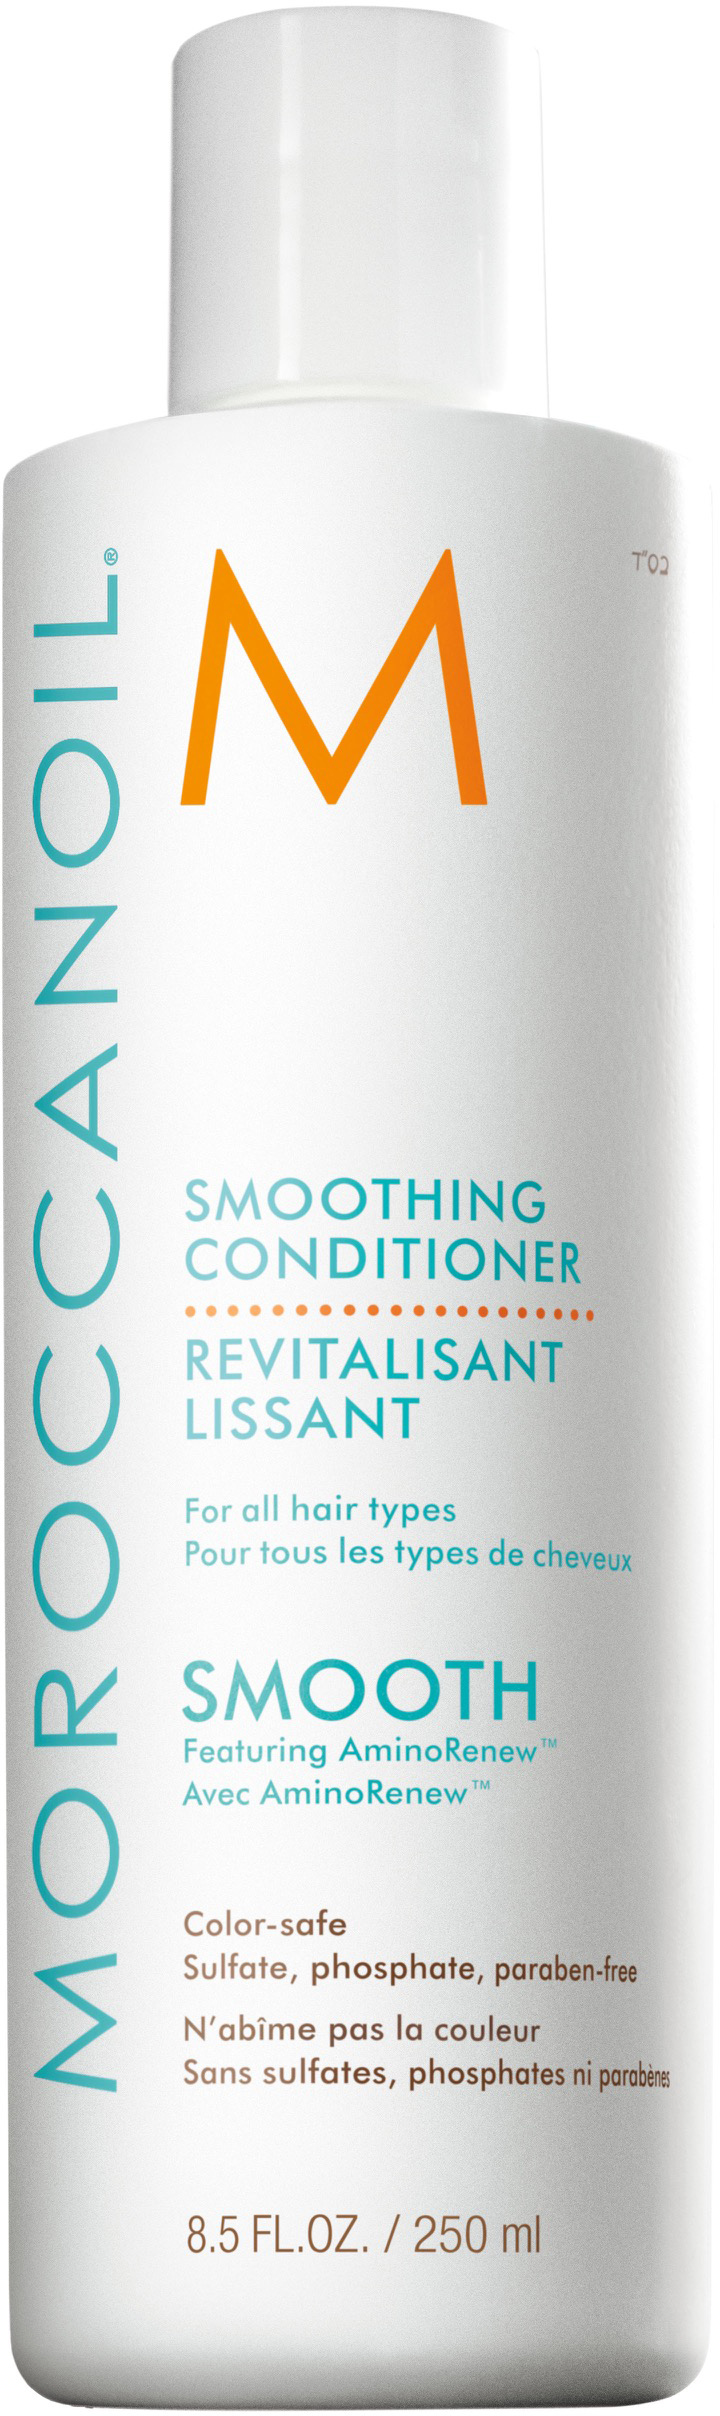 Moroccanoil Smoothing Conditioner 250ml - utan parabener.